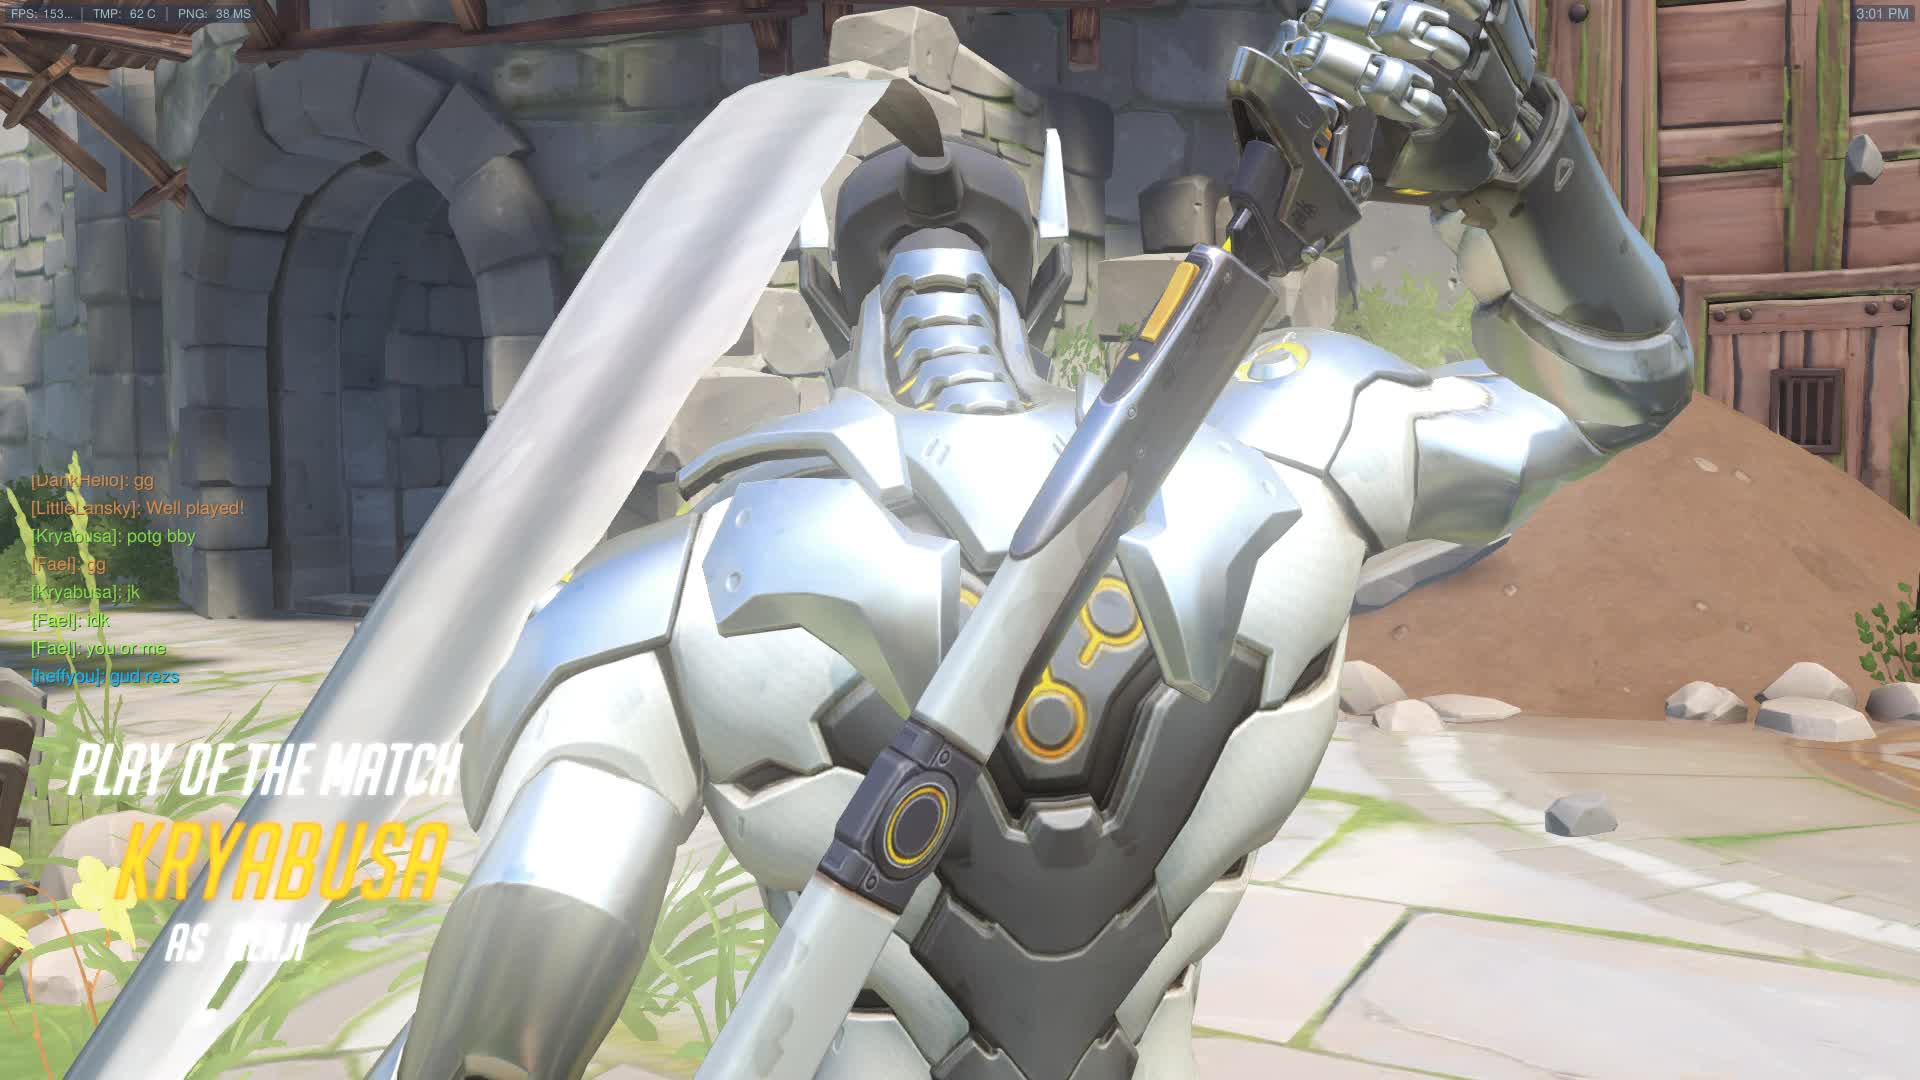 vlc-record-2017-04-26-15h54m02s-Overwatch 04.26.2017 - 15.02 GIFs